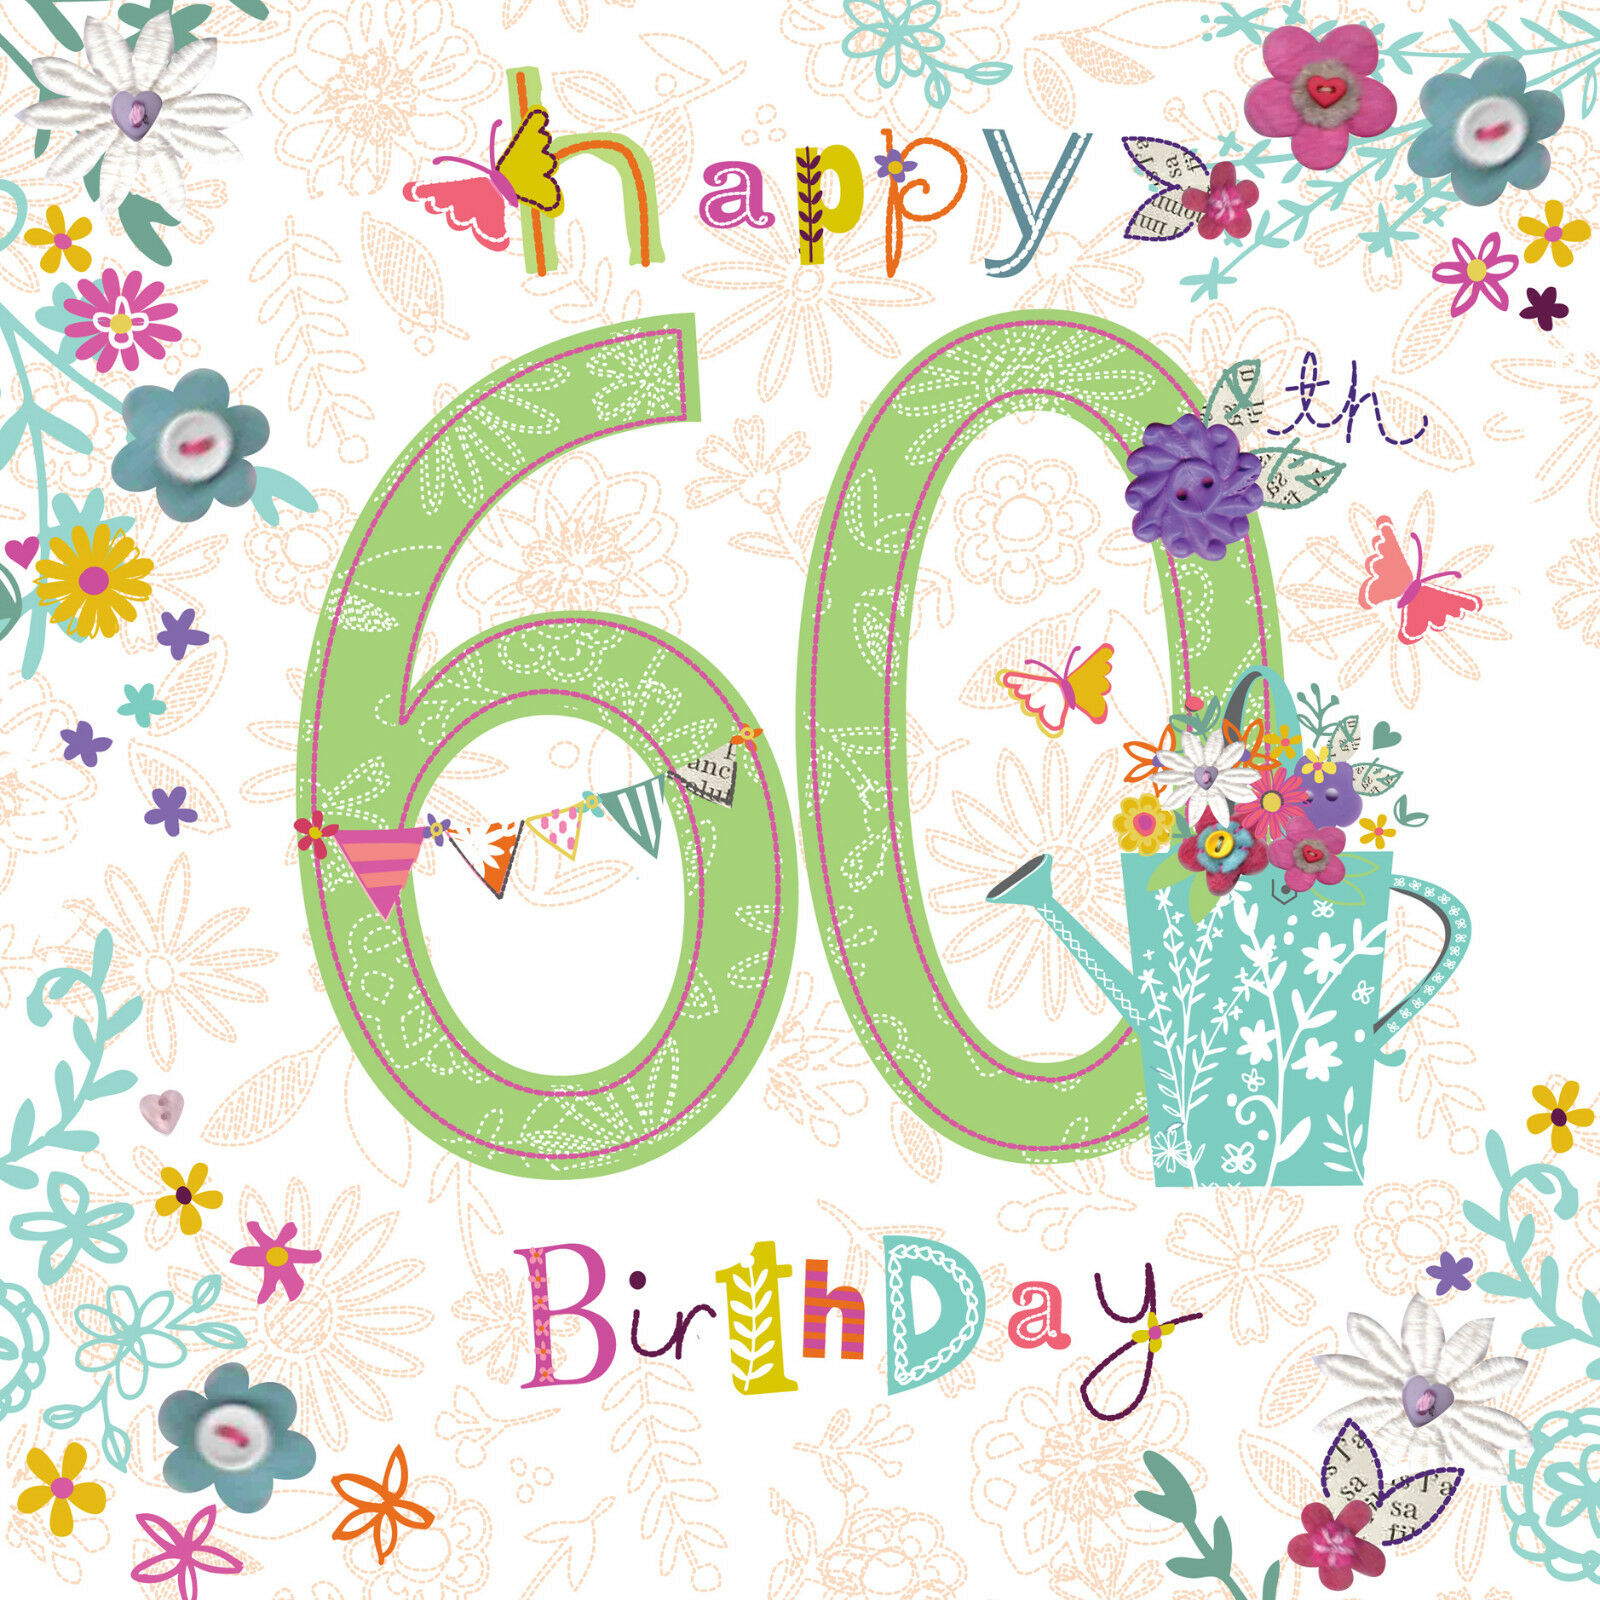 Beautiful colourful glitter coated happy 60th birthday greeting card beautiful colourful glitter coated happy 60th birthday greeting card 1 of 2free shipping see more m4hsunfo